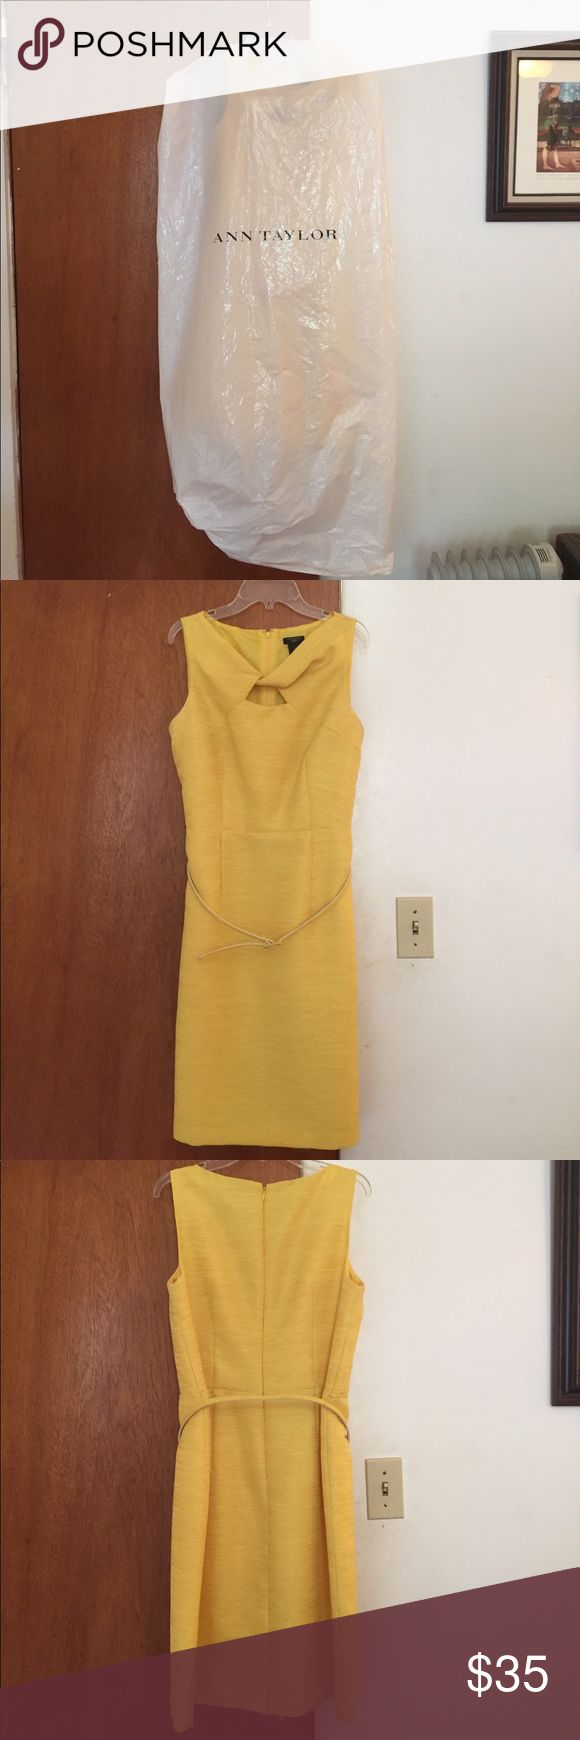 Size 8-petite Ann Taylor Yellow Cocktail Dress Beautiful Ann Taylor dress very gently used, only worn once, in impeccable condition. Dress hits above the knees and comes with a belt. Ann Taylor Dresses